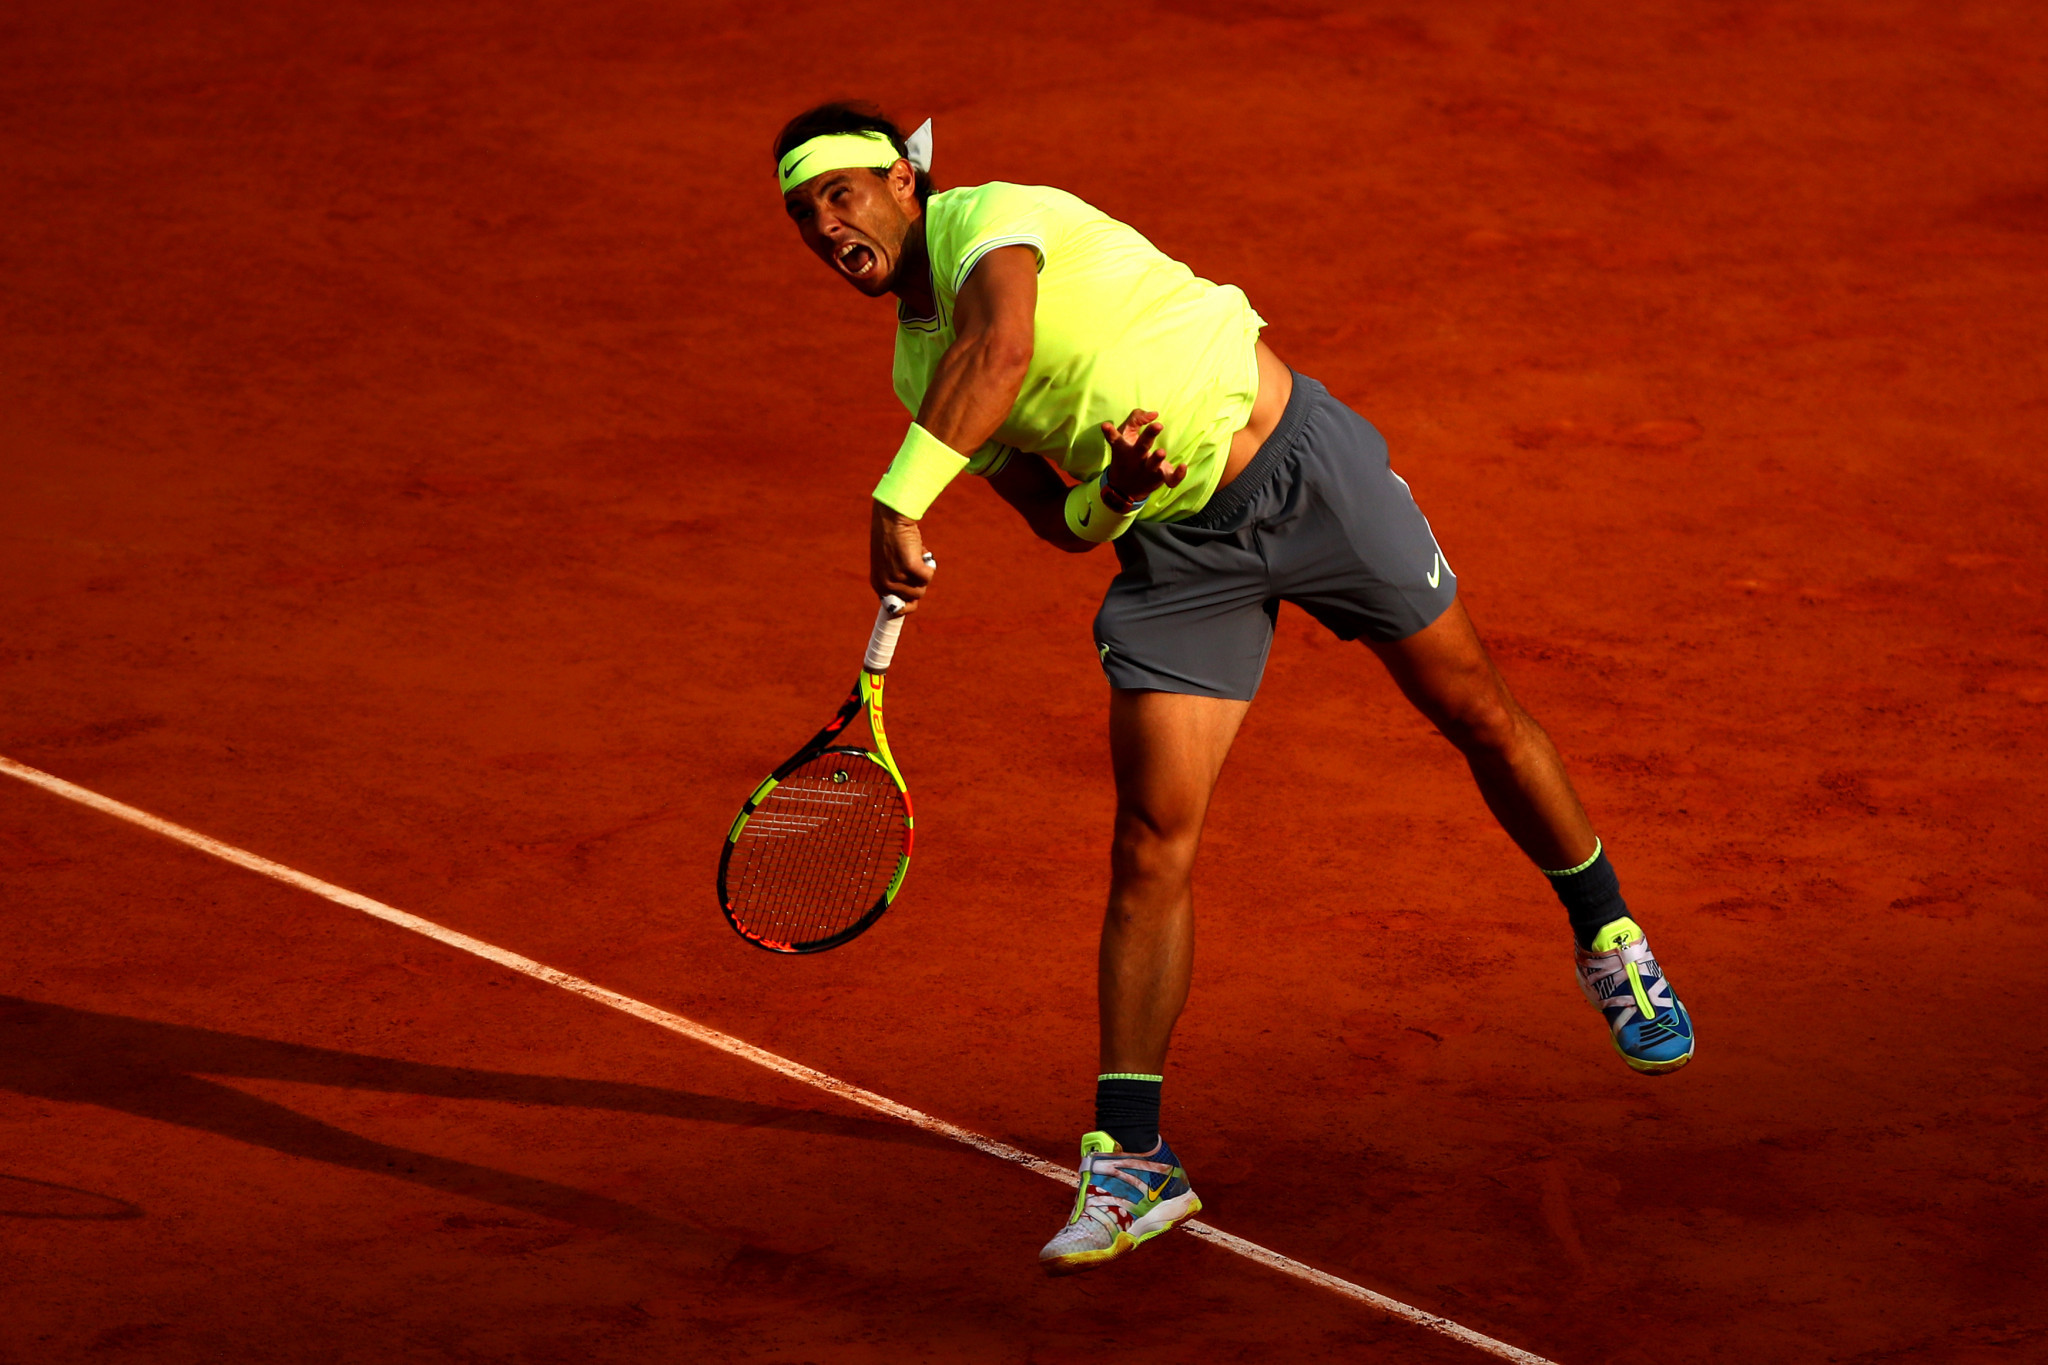 Rafael Nadal eased into the last four with a 6-1, 6-1, 6-3 victory over Japanese number seven seed Kei Nishikori ©Getty Images